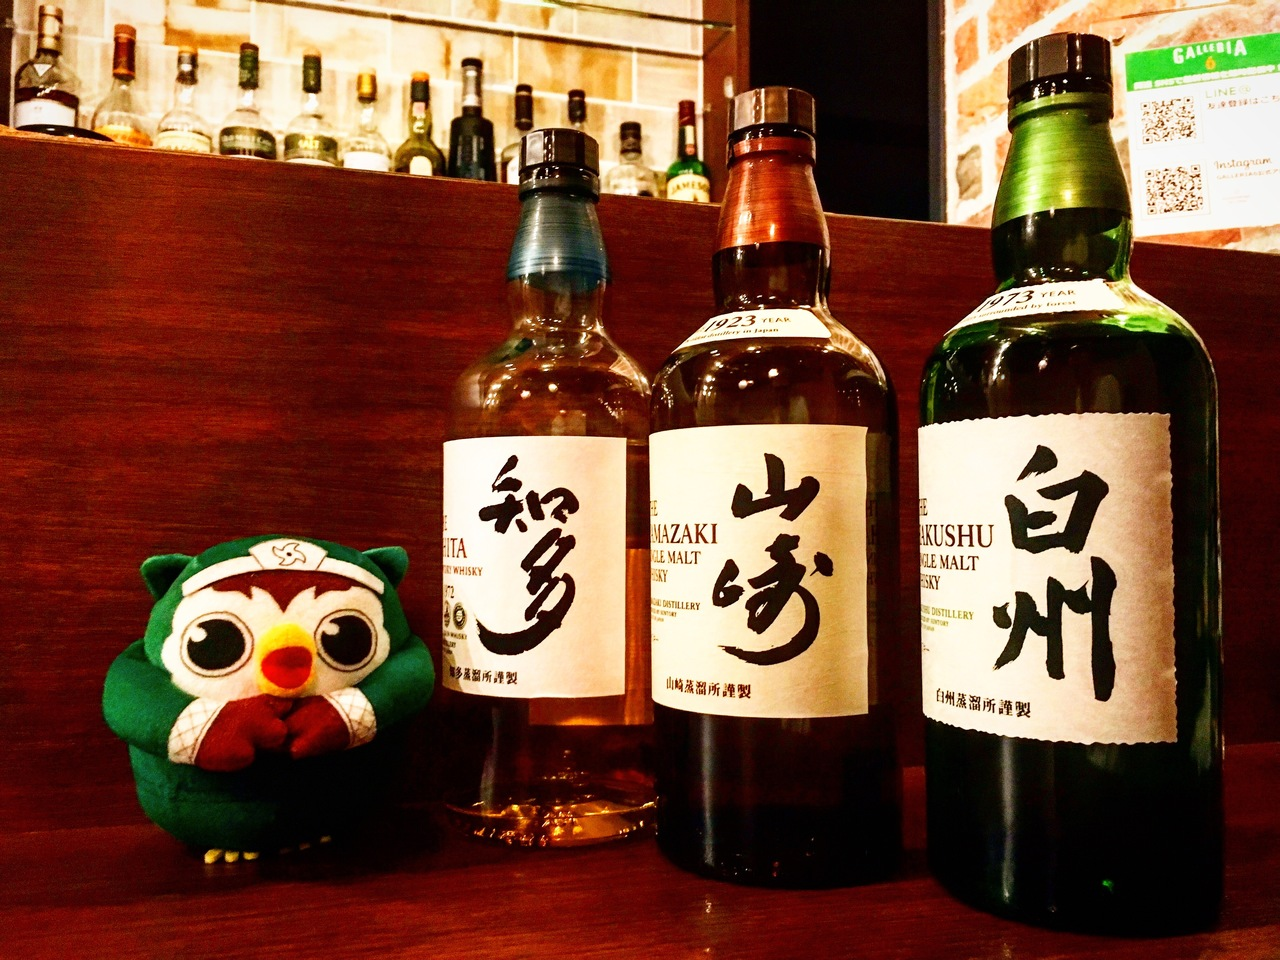 【Ticket】 Let's experience Japanese whiskey